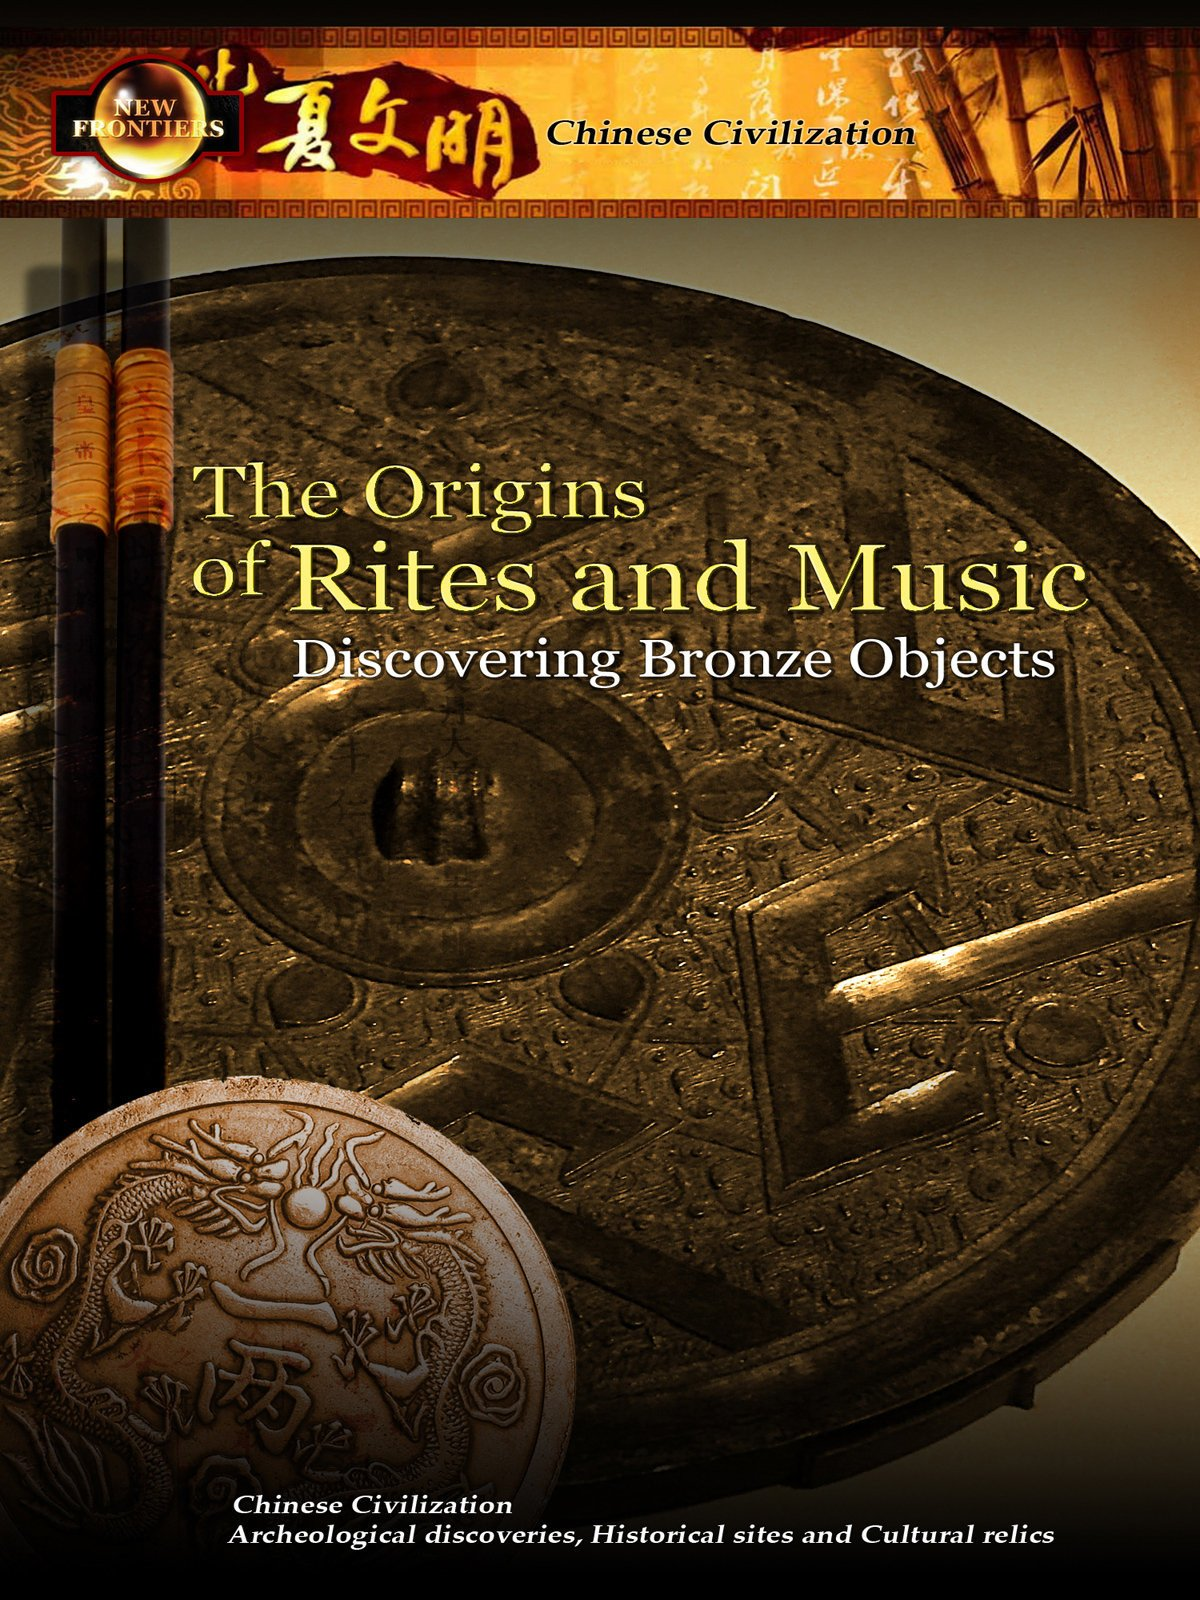 Chinese Civilization - The Origins of Rites and Music Discovering Bronze Objects